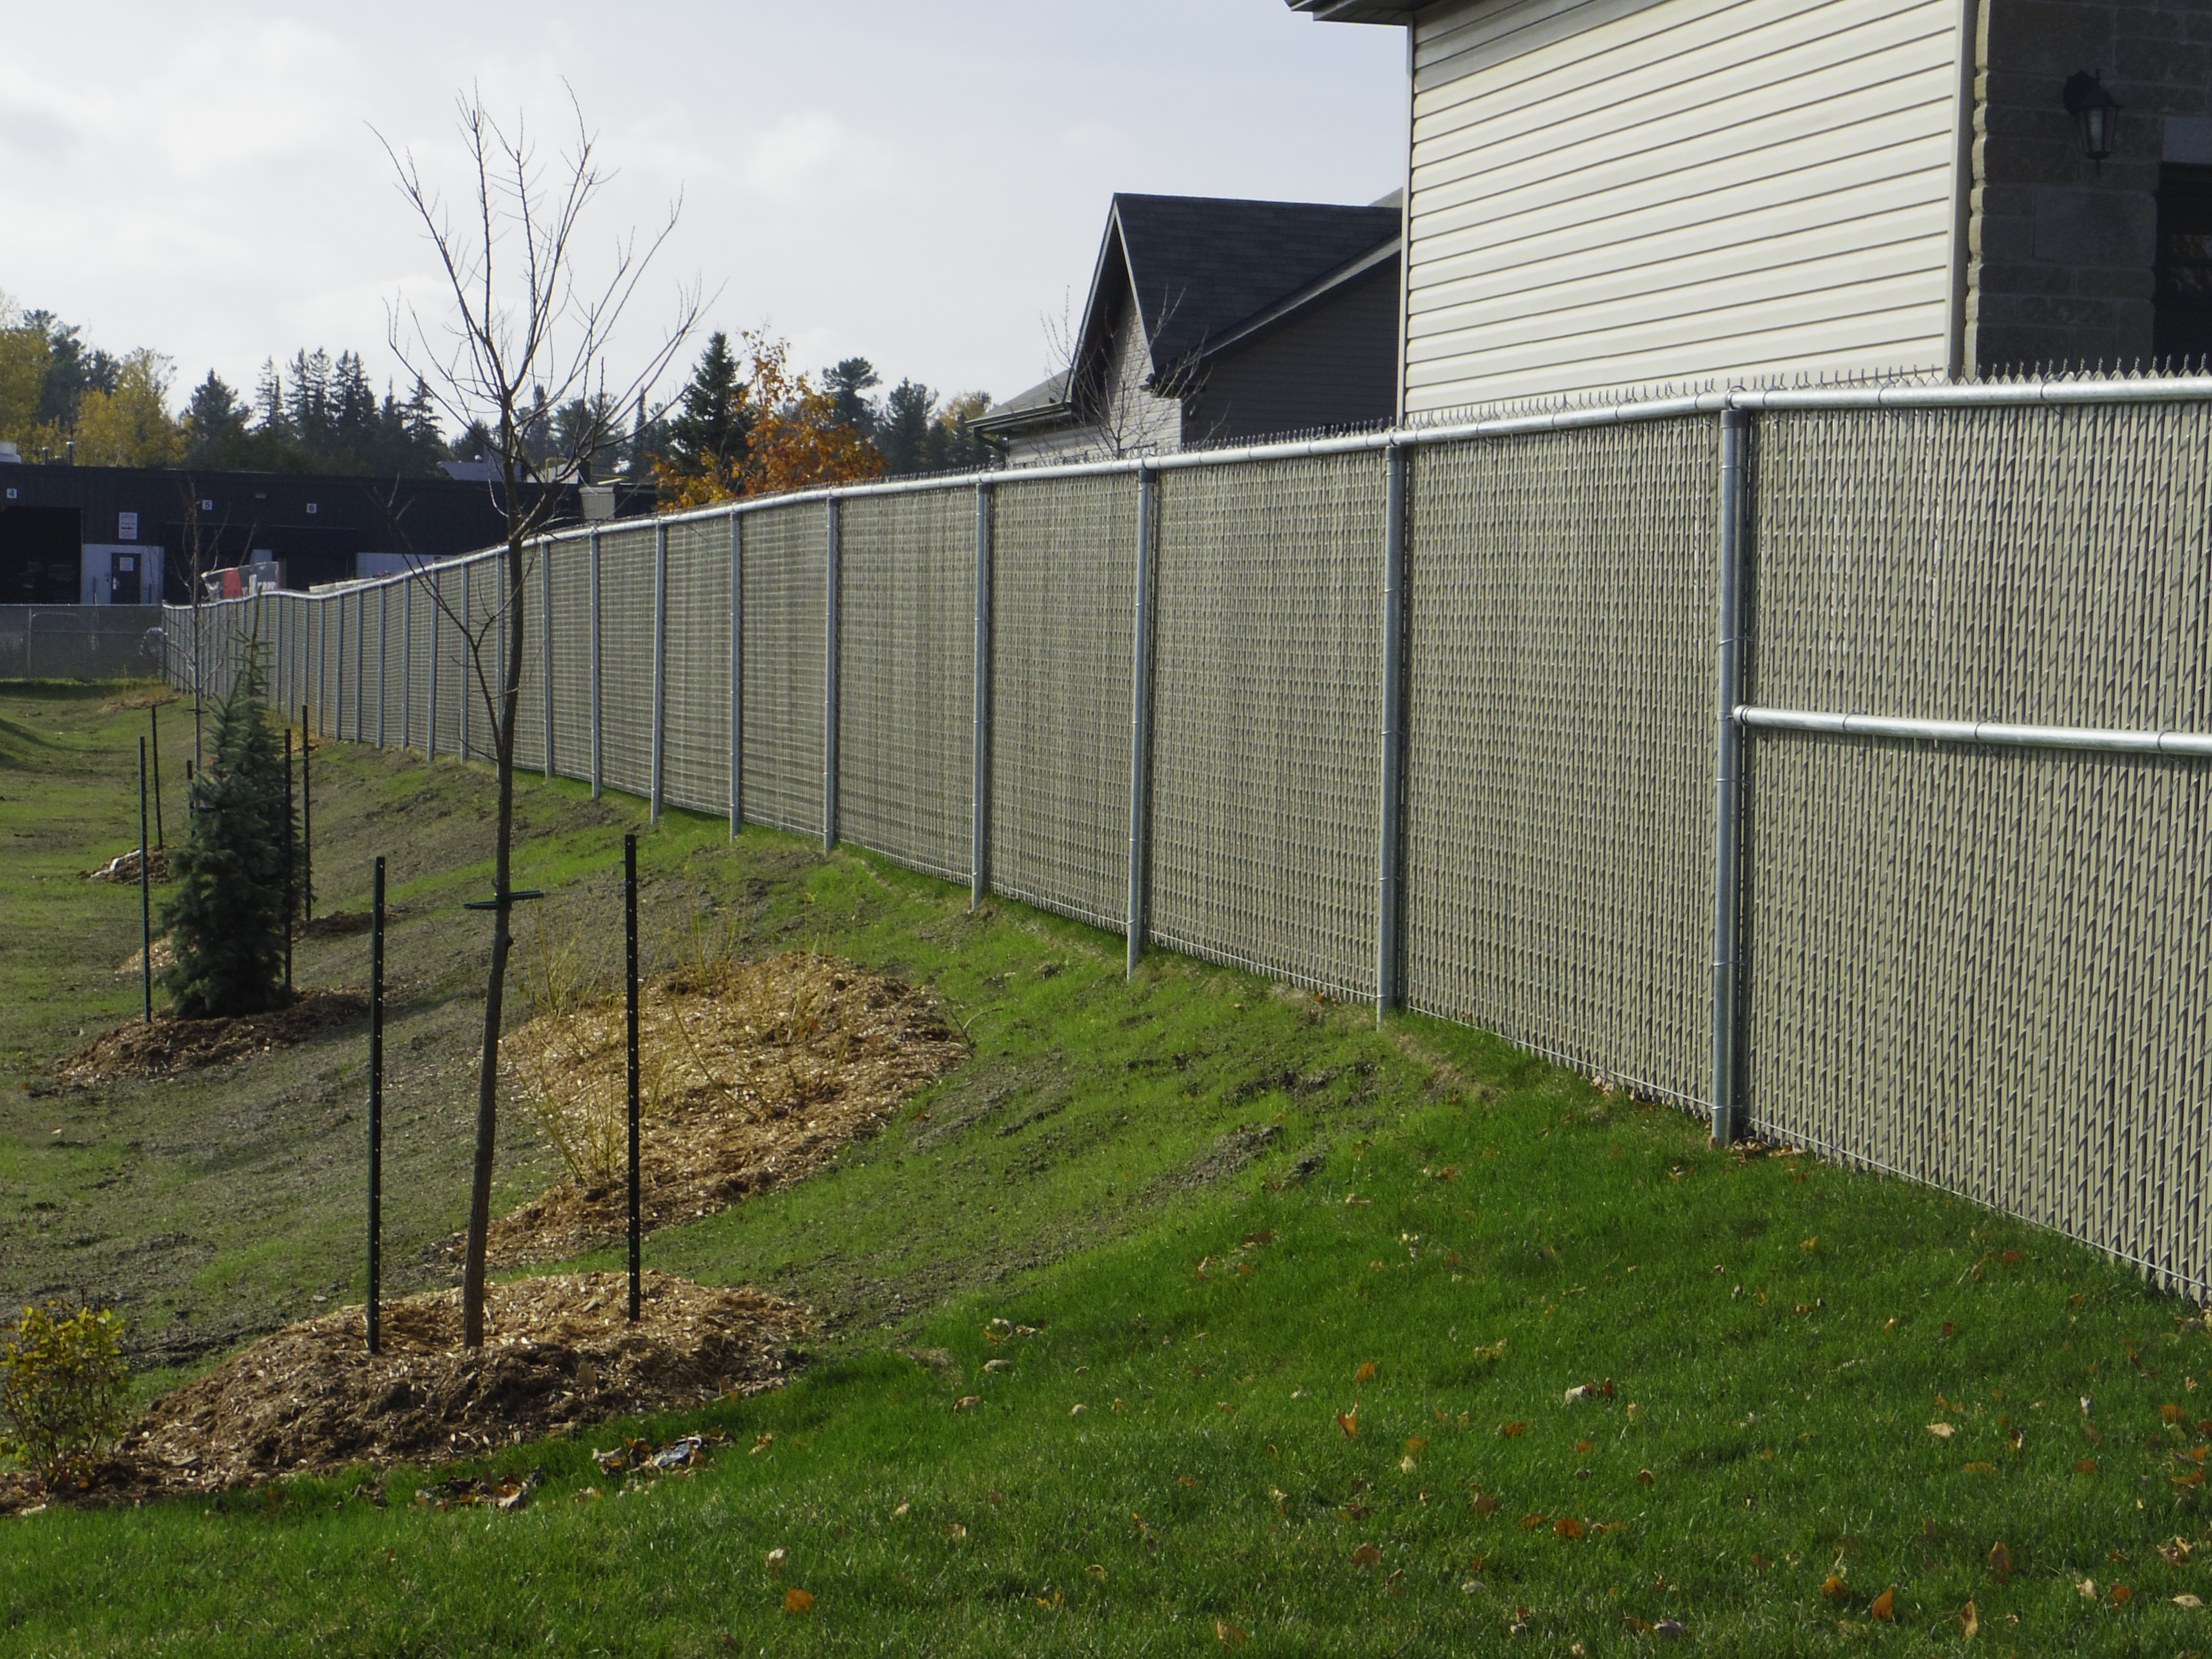 Privacy screen for chain link fence sears - Chain Link Fence Privacy Slats Ontario Our Customers